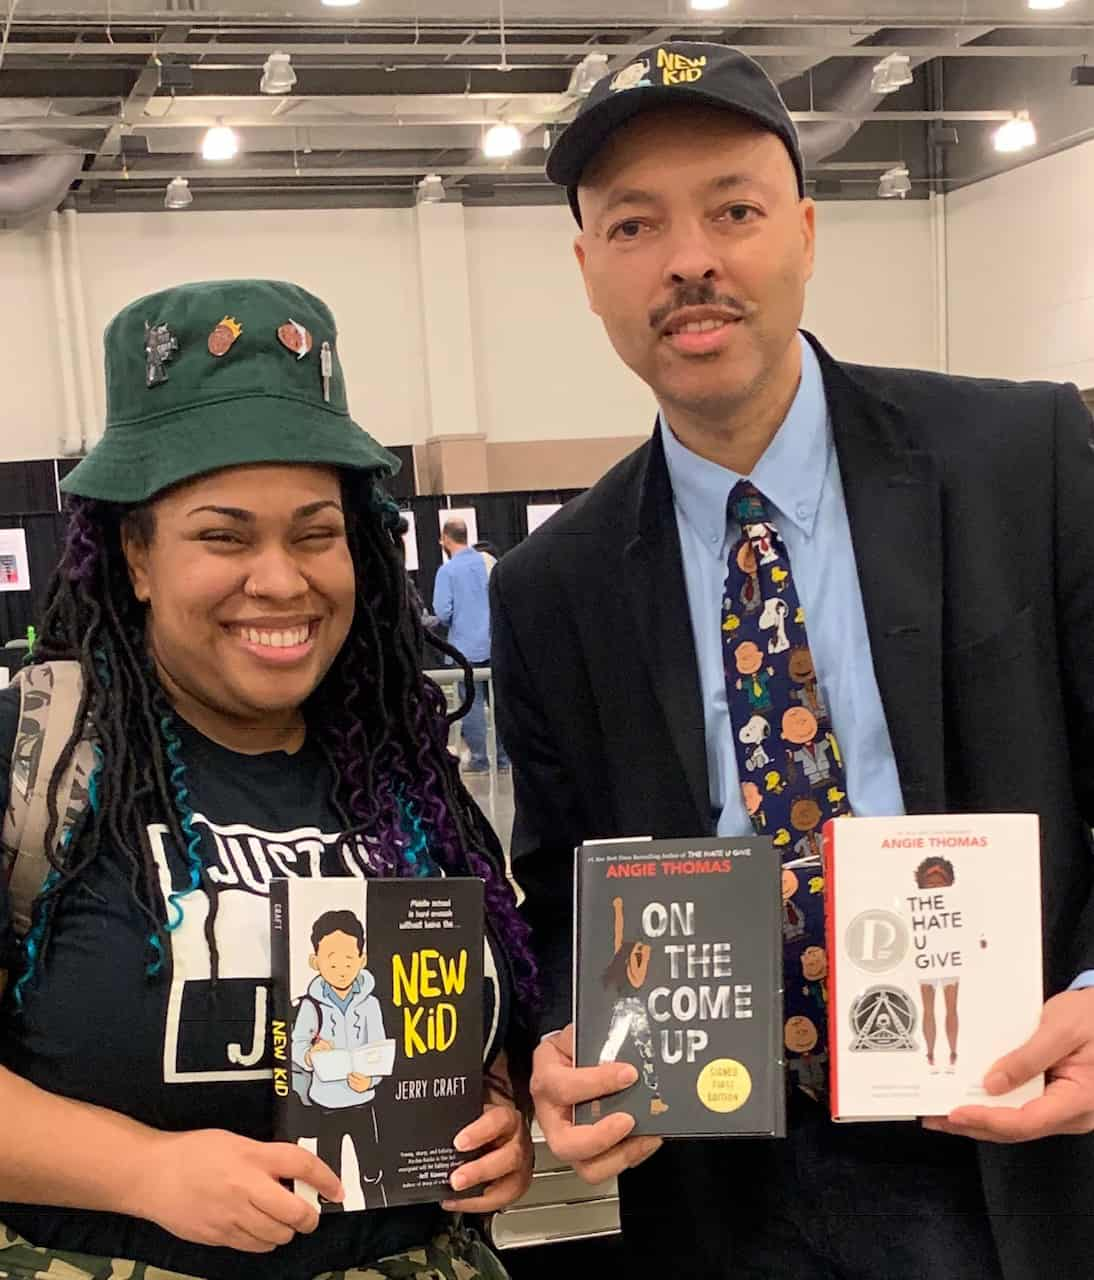 Angie Thomas and Jerry Craft